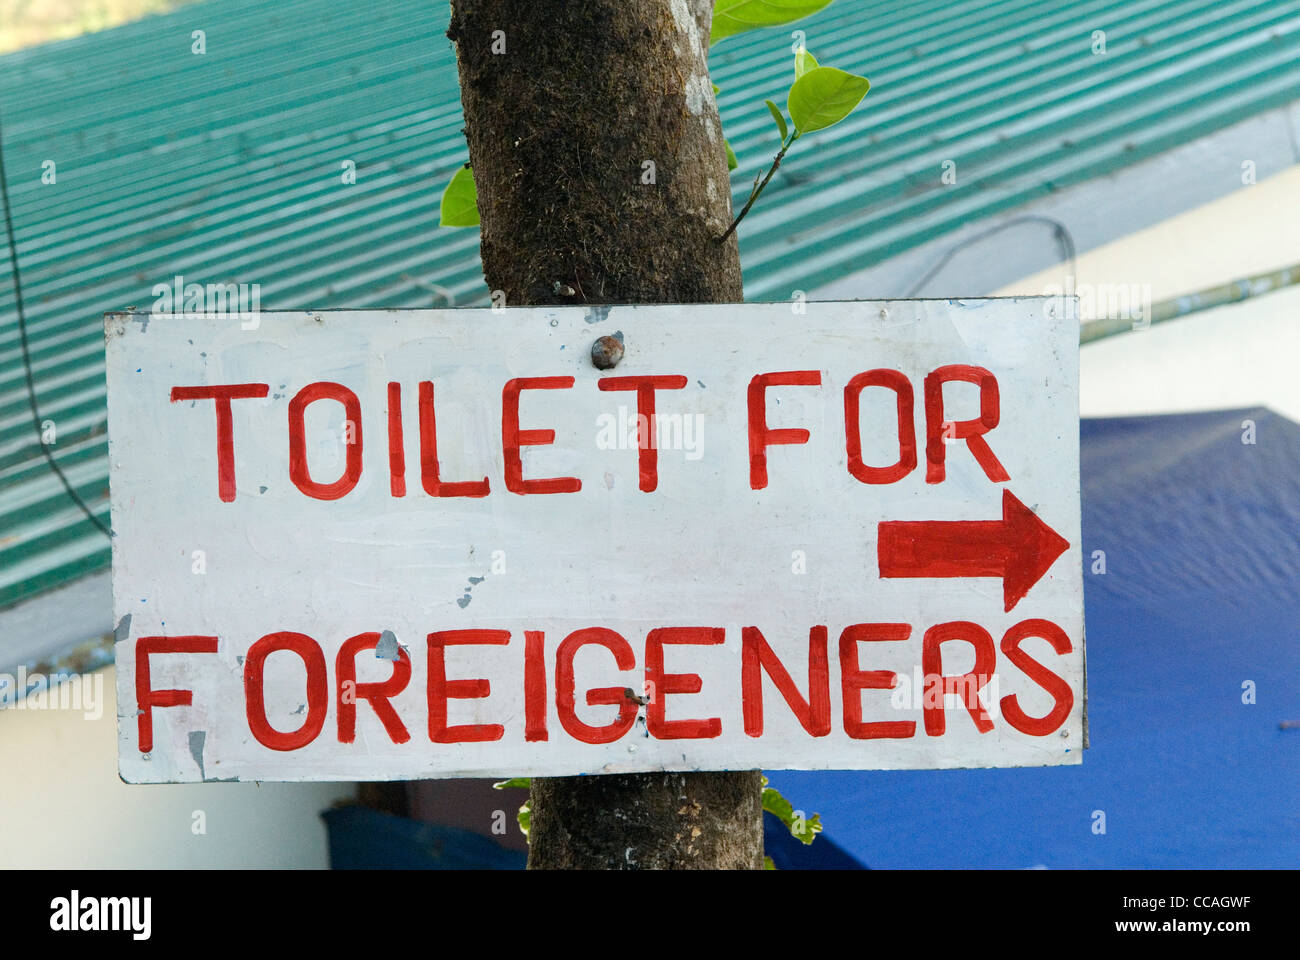 Toilets for Foreigeners sign Asia. Foreigners, tourists toilet WC lavatory - Stock Image